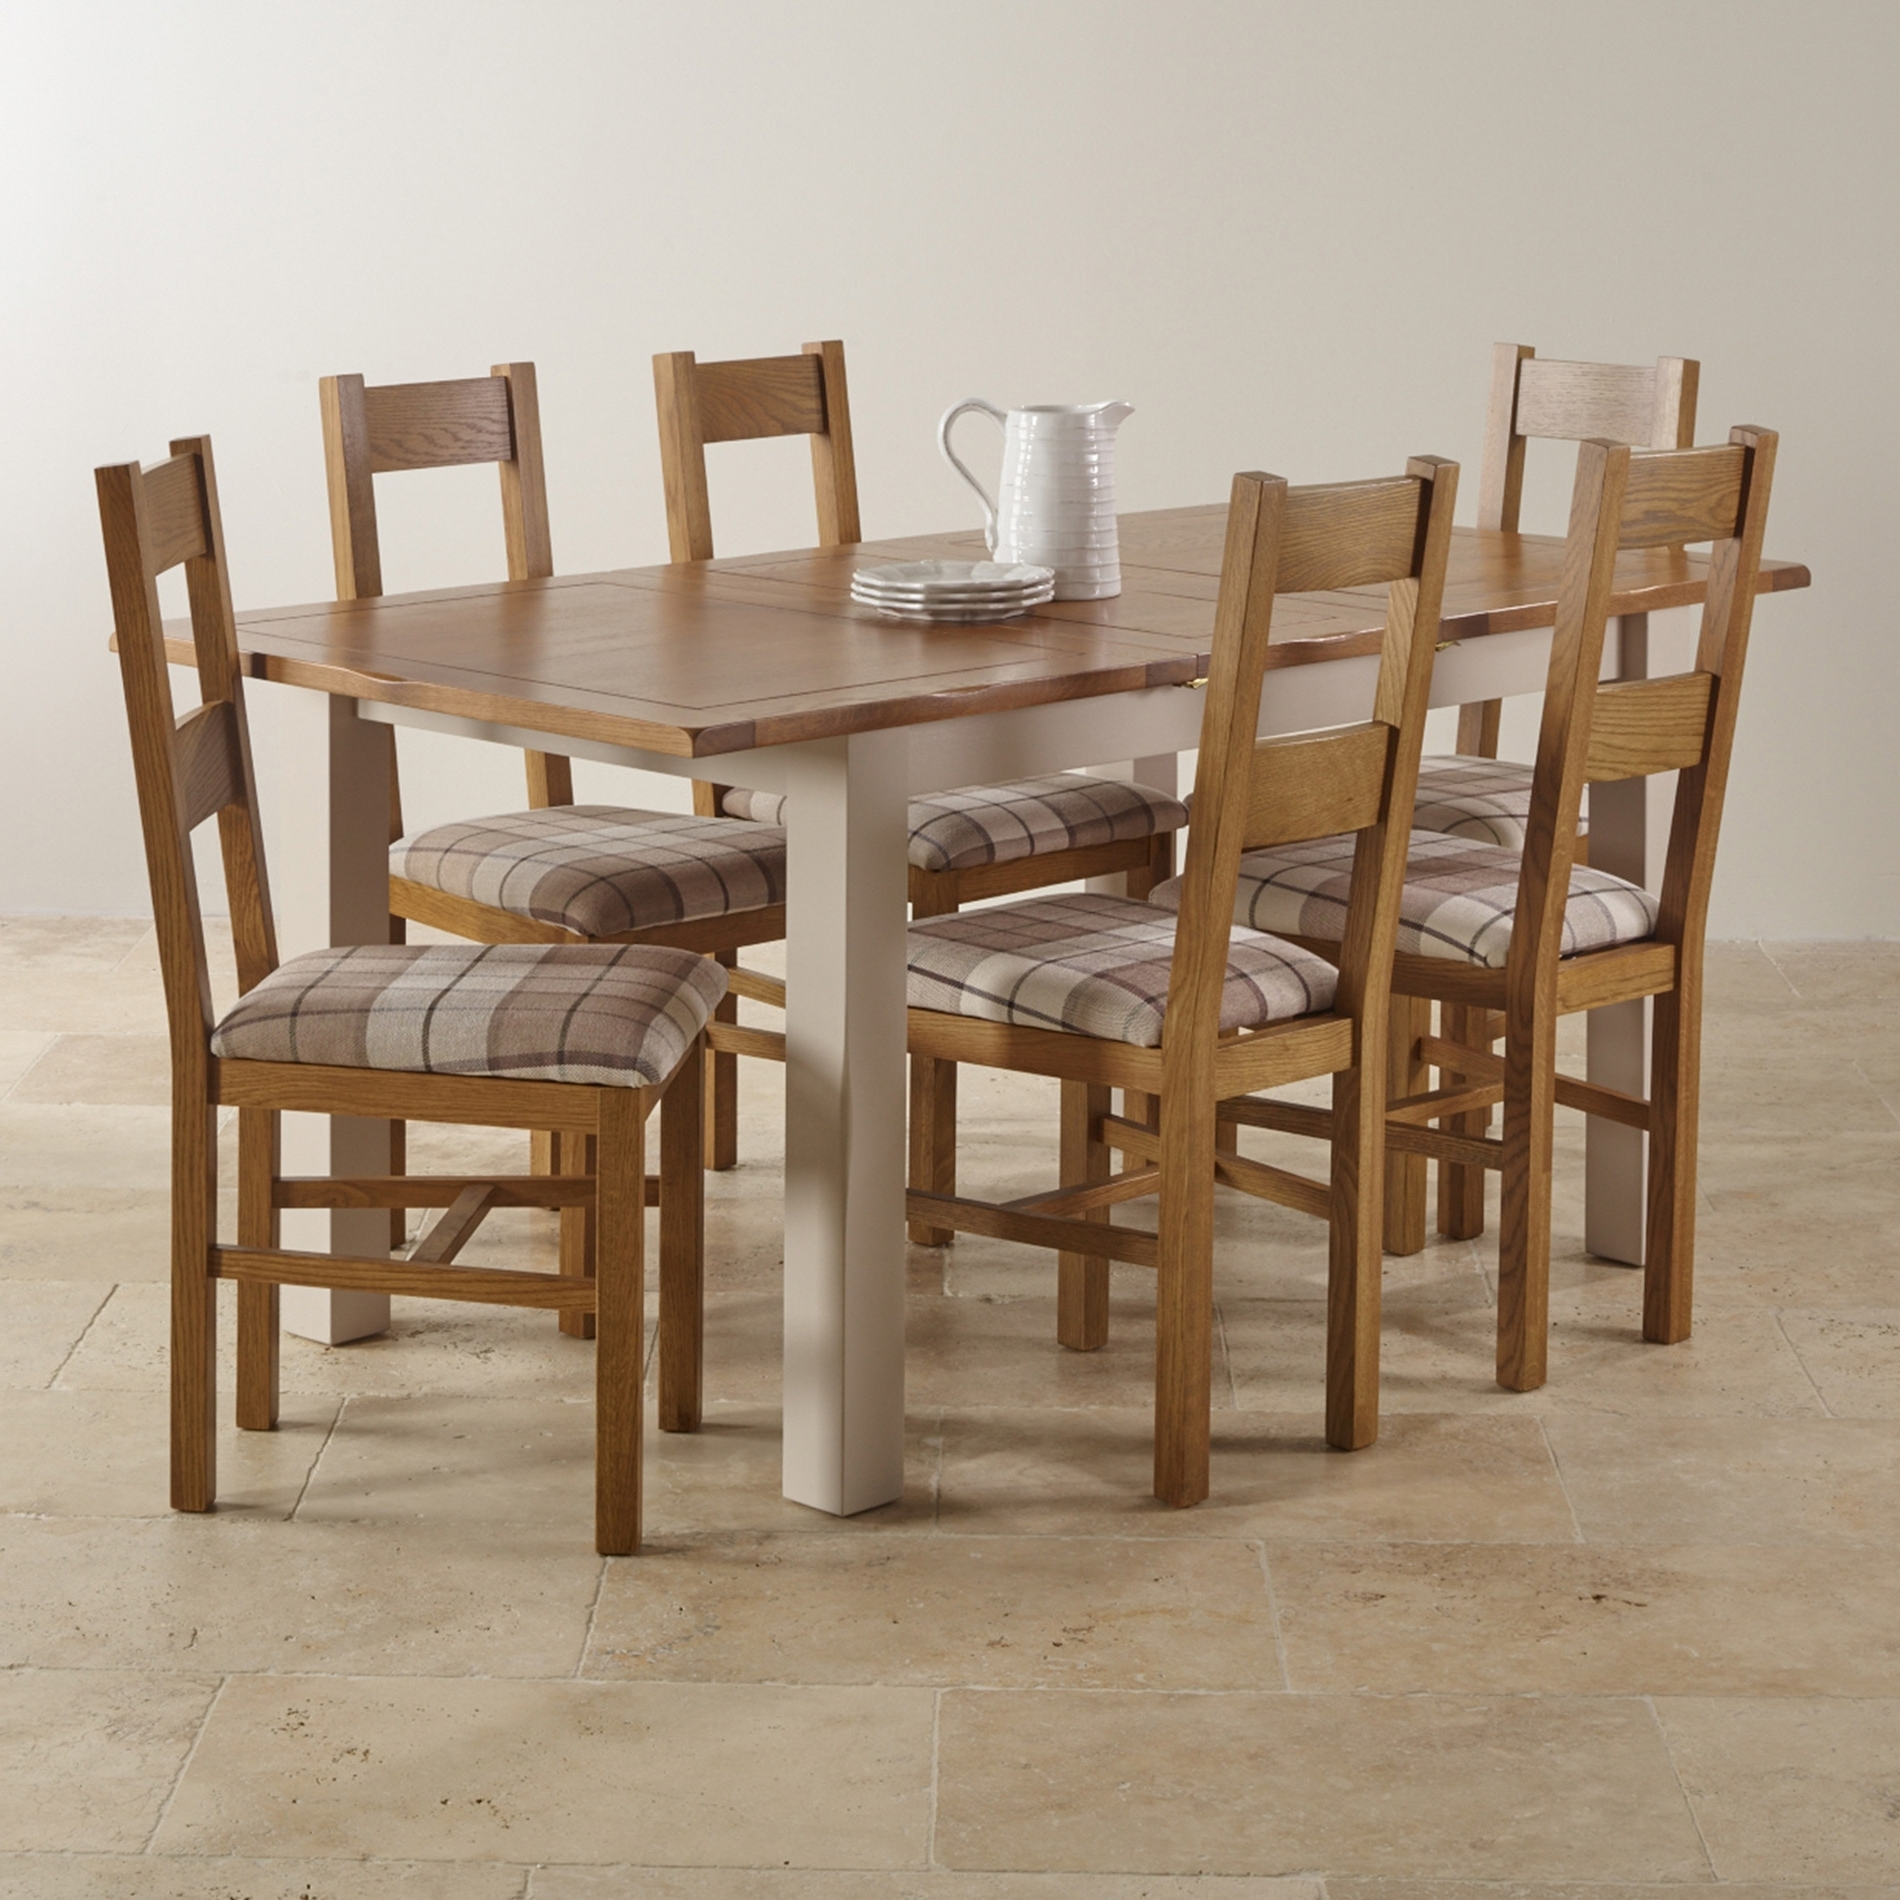 Chunky Solid Oak Dining Tables And 6 Chairs Within Most Recently Released Large Glass Set Grey Seats Gold Rattan Folding Small Room Chairs (View 12 of 25)